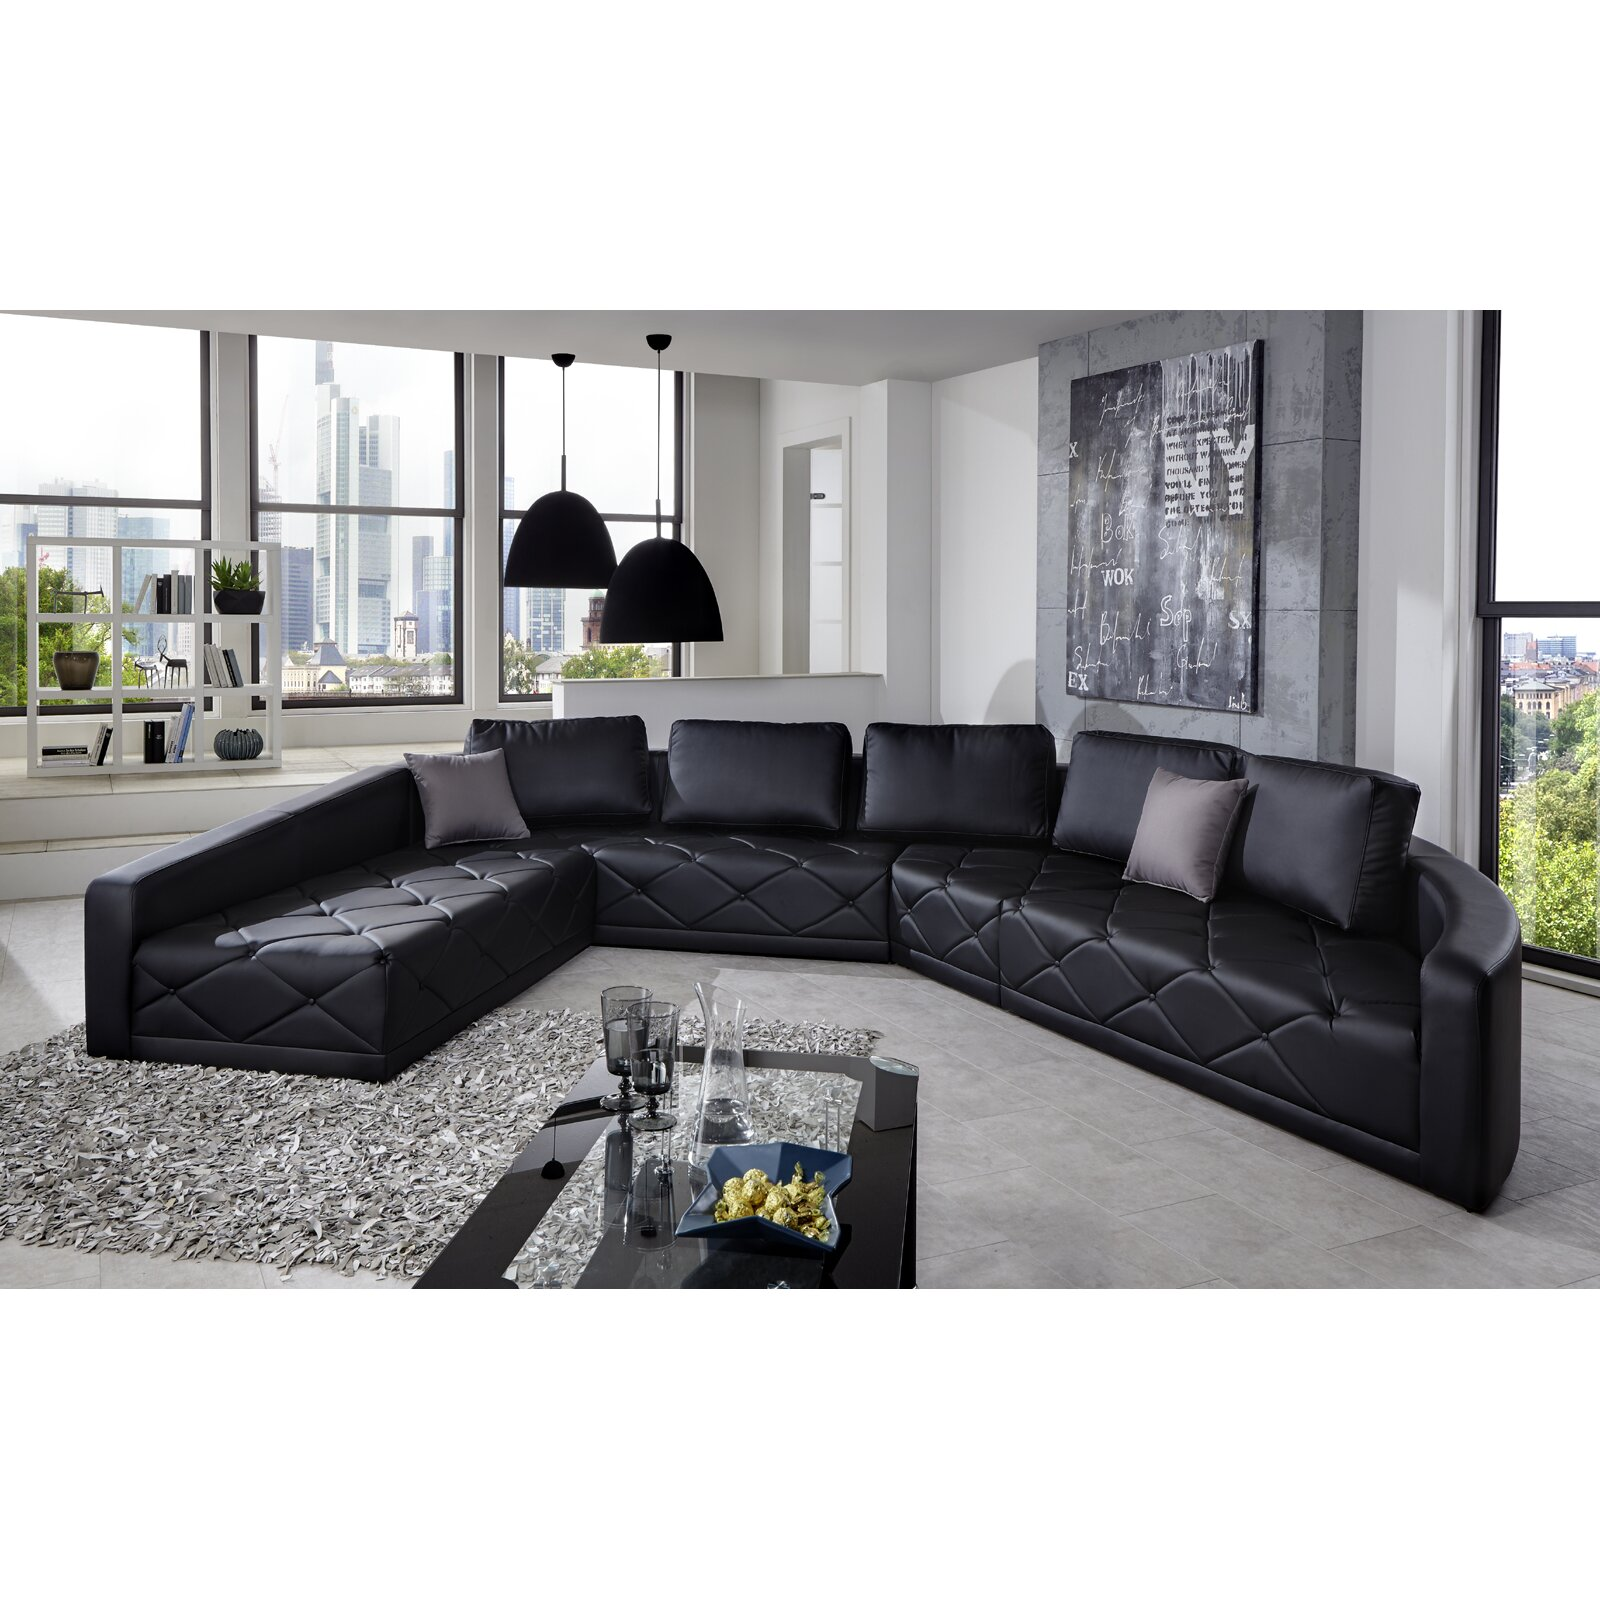 sam stil art m bel gmbh wohnlandschaft nero. Black Bedroom Furniture Sets. Home Design Ideas